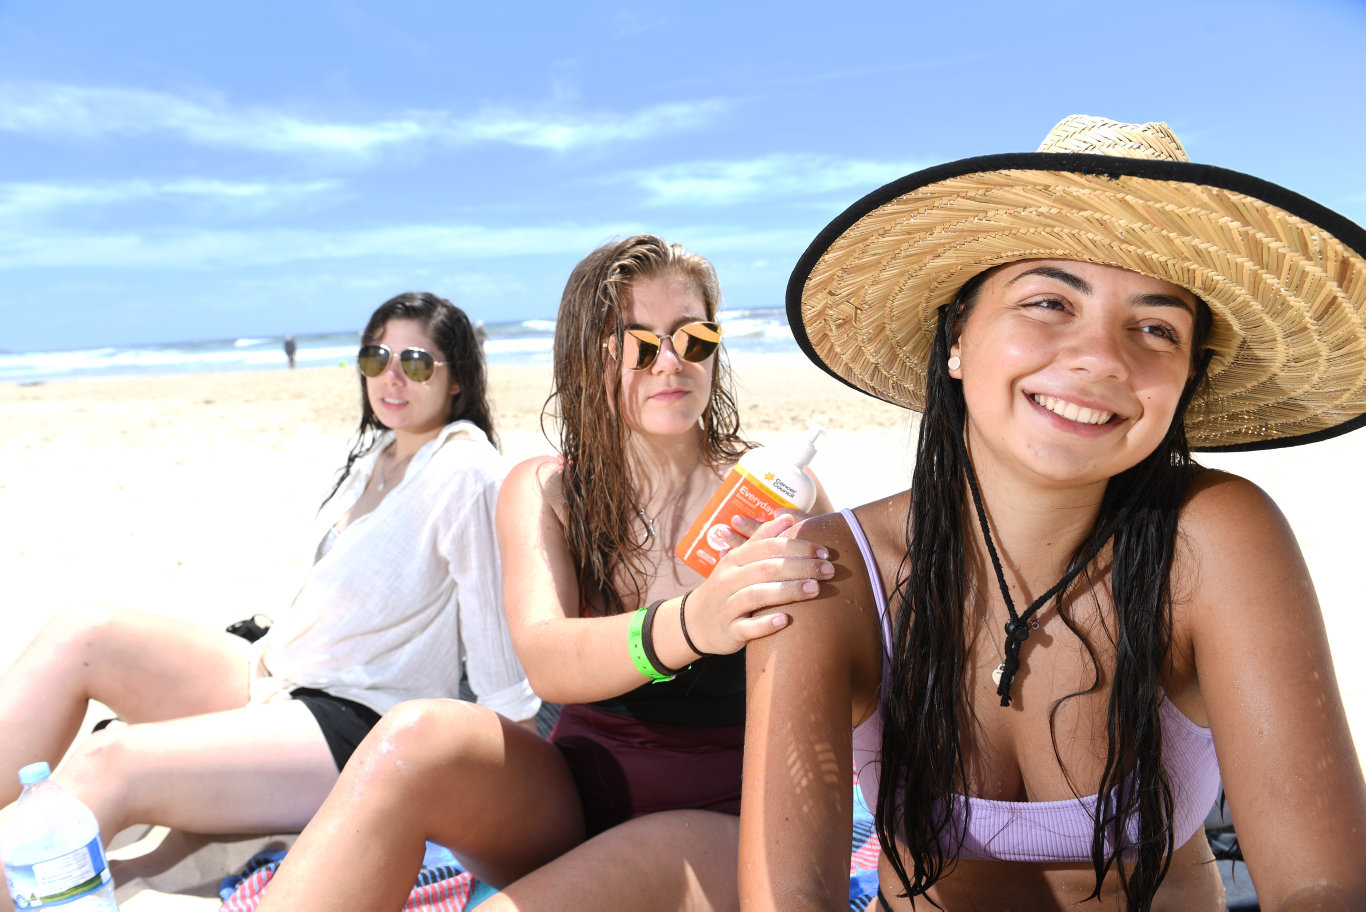 Jasmine Jennings, of Sydney, Josie Hall, of Canberra, and Jennifer Gerner, of Germany, escape the heat at Seven Mile Beach as temperatures soar on the Northern Rivers.